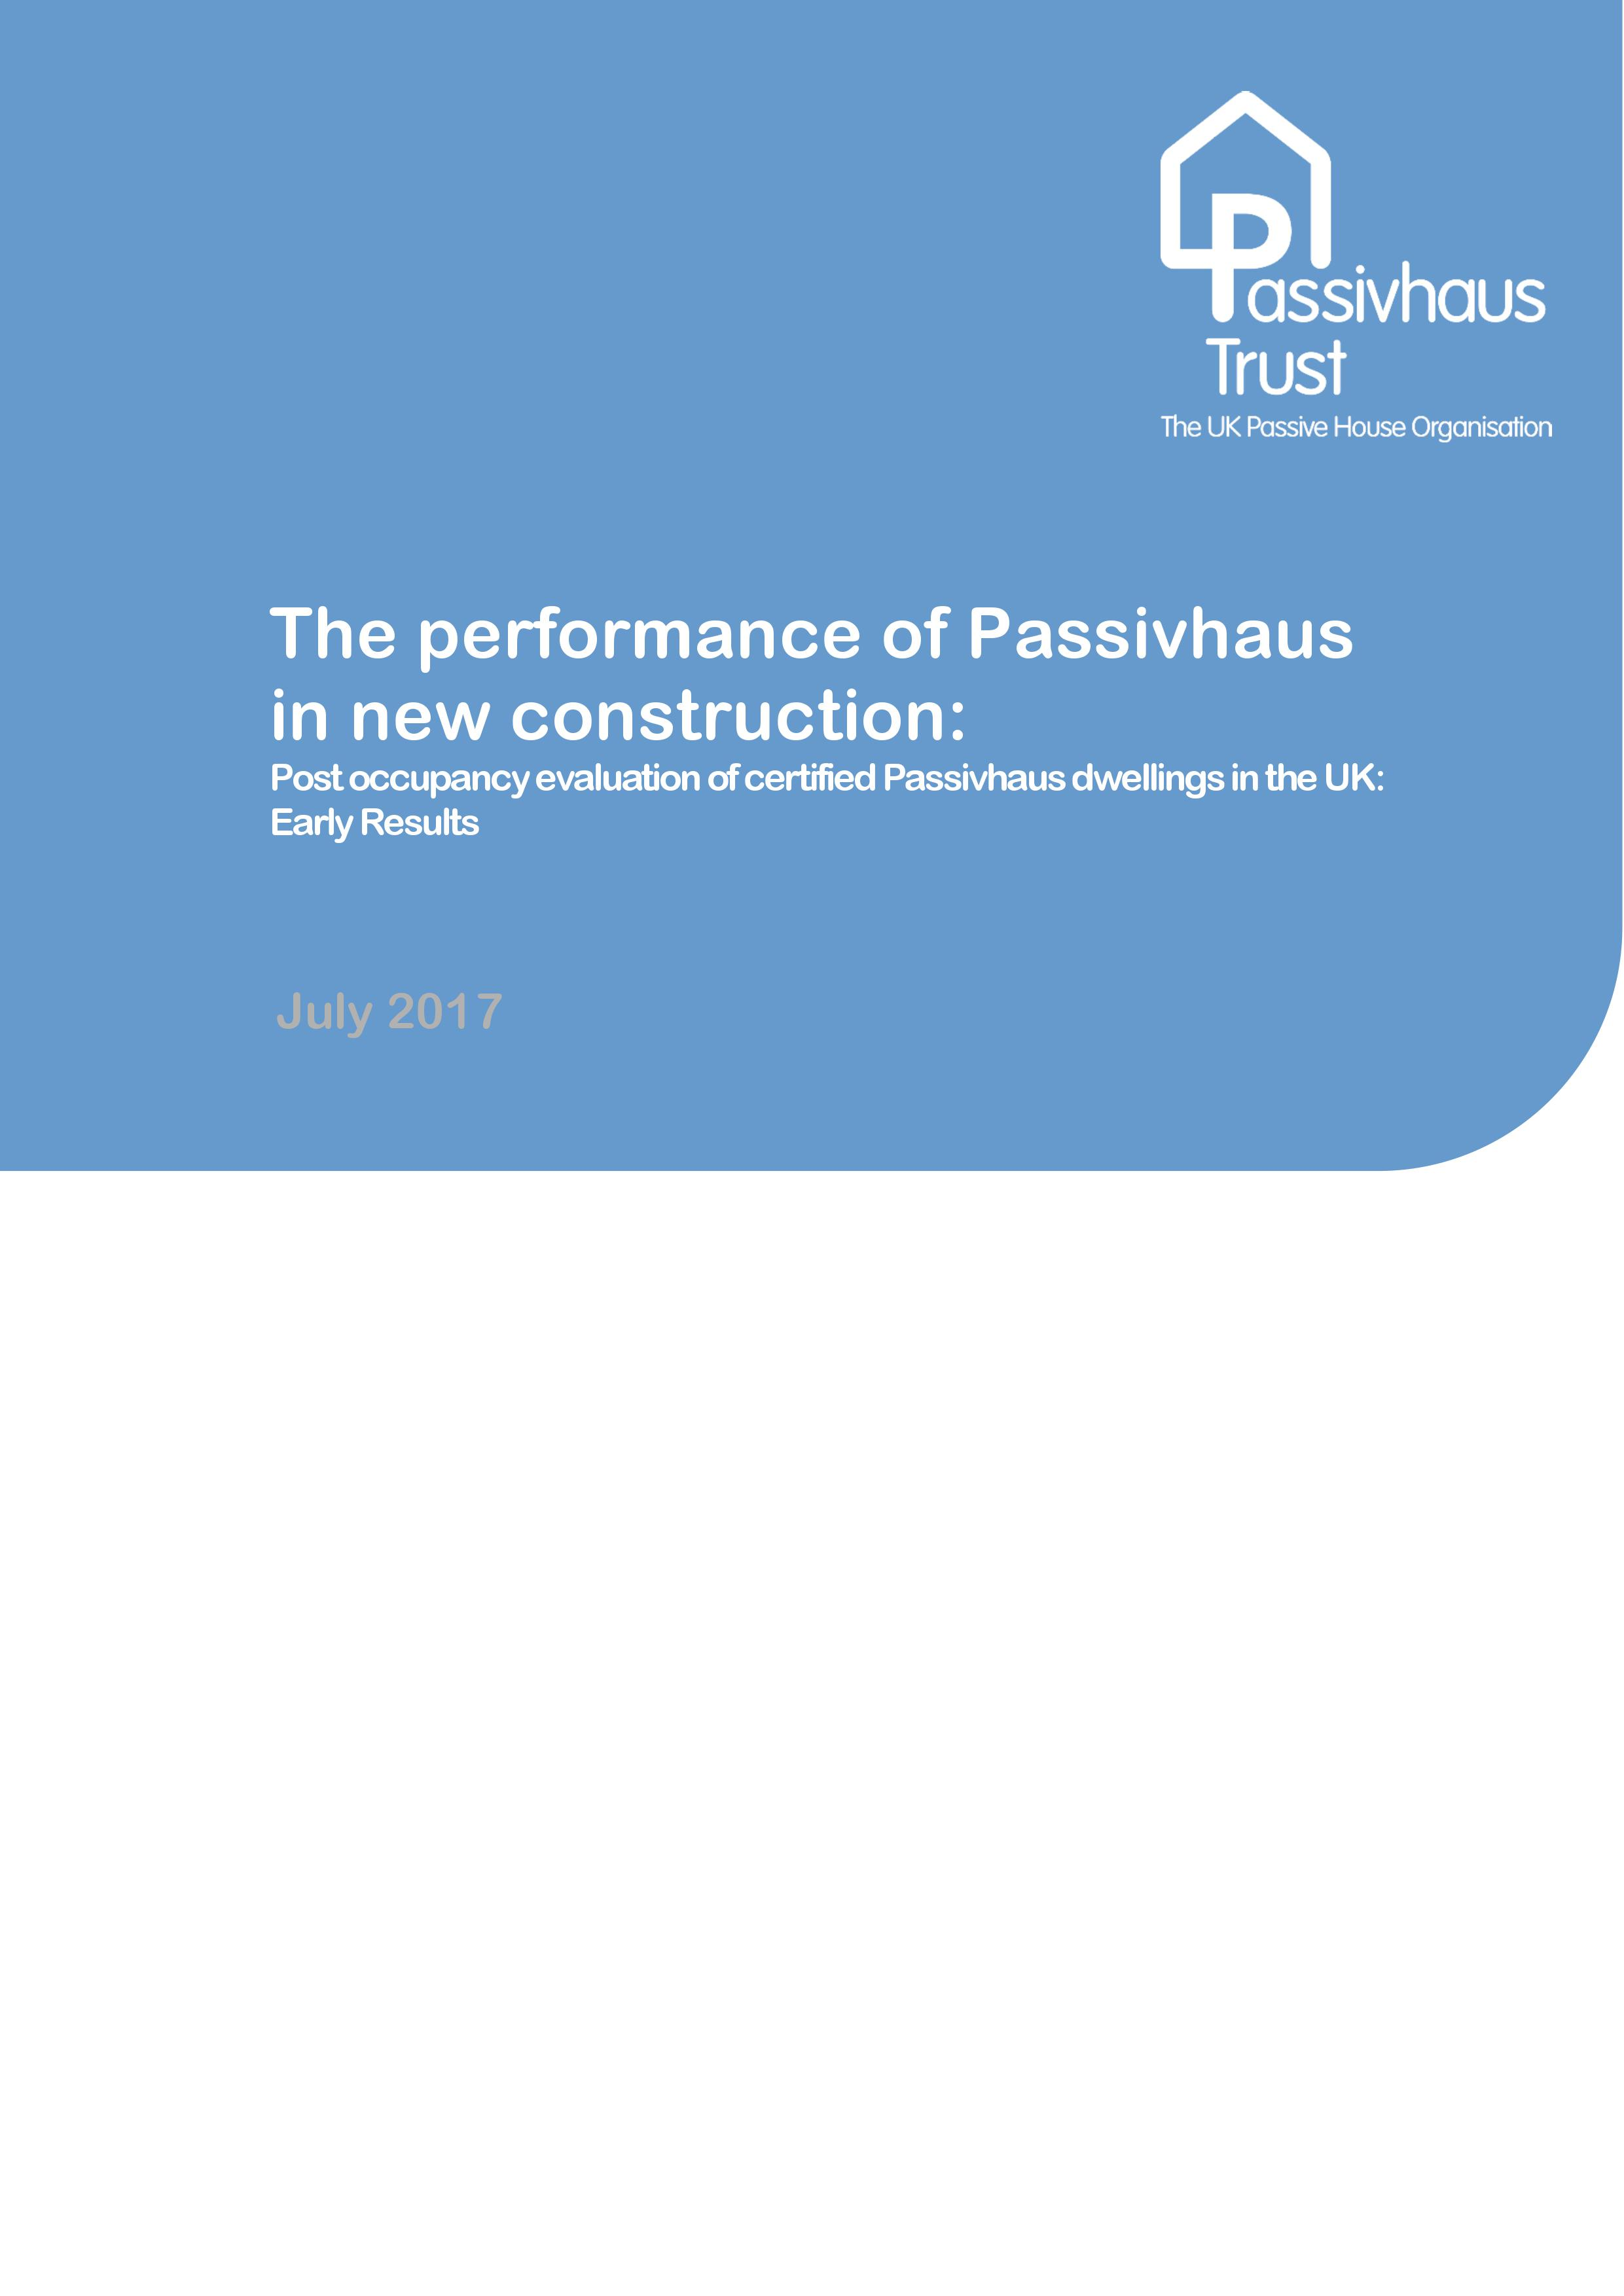 The performance of Passivhaus in new construction [PDF]